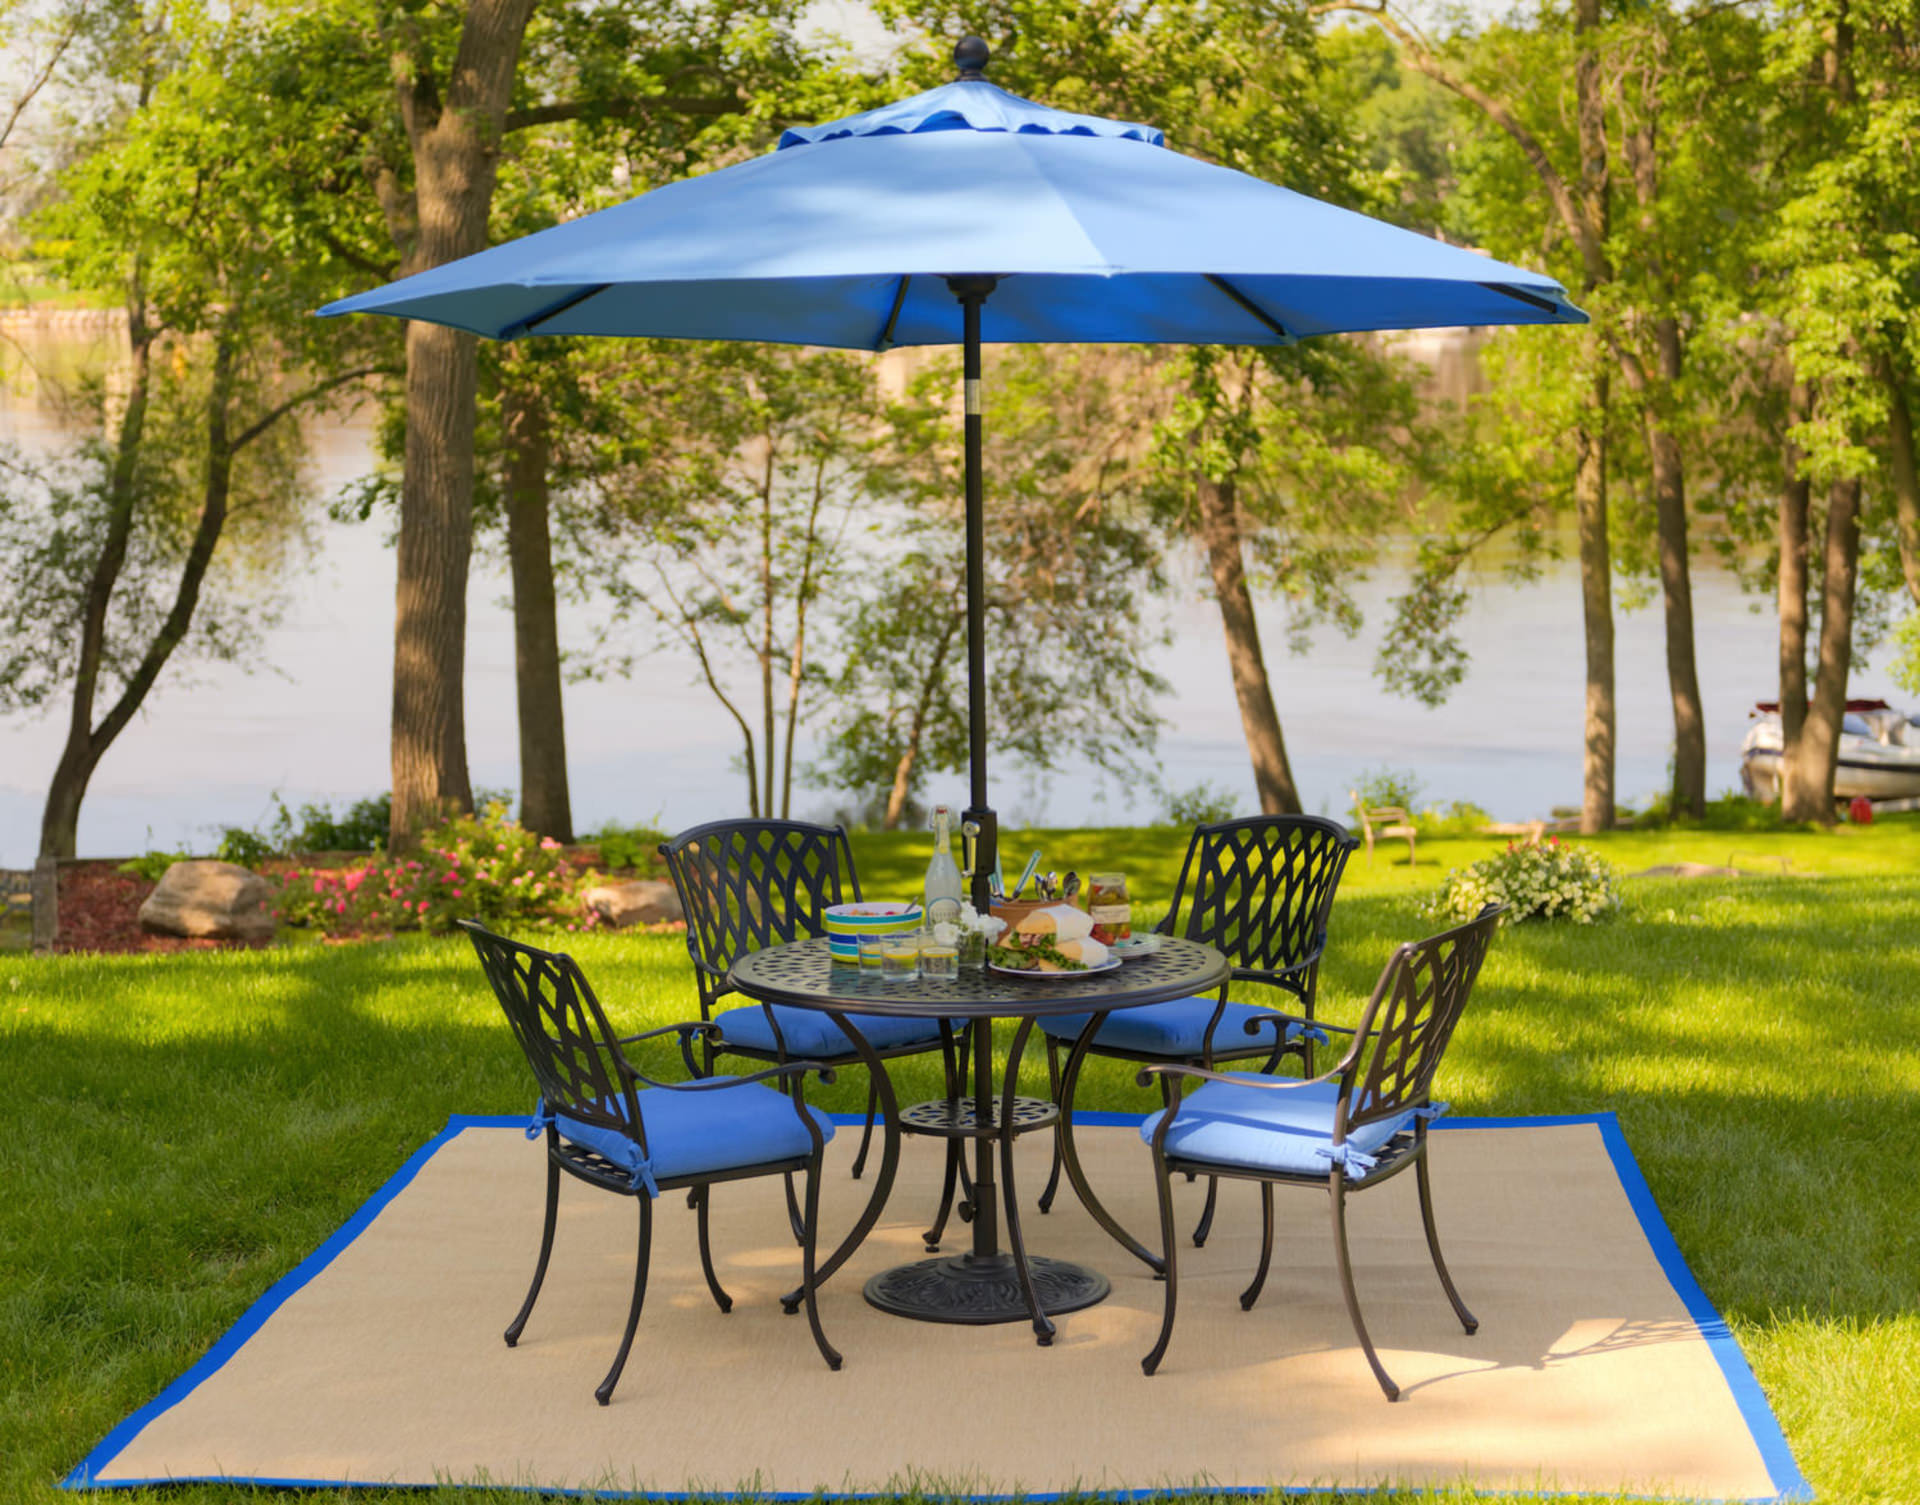 Blue Accent Colors Are Por In Outdoor Furniture This Year